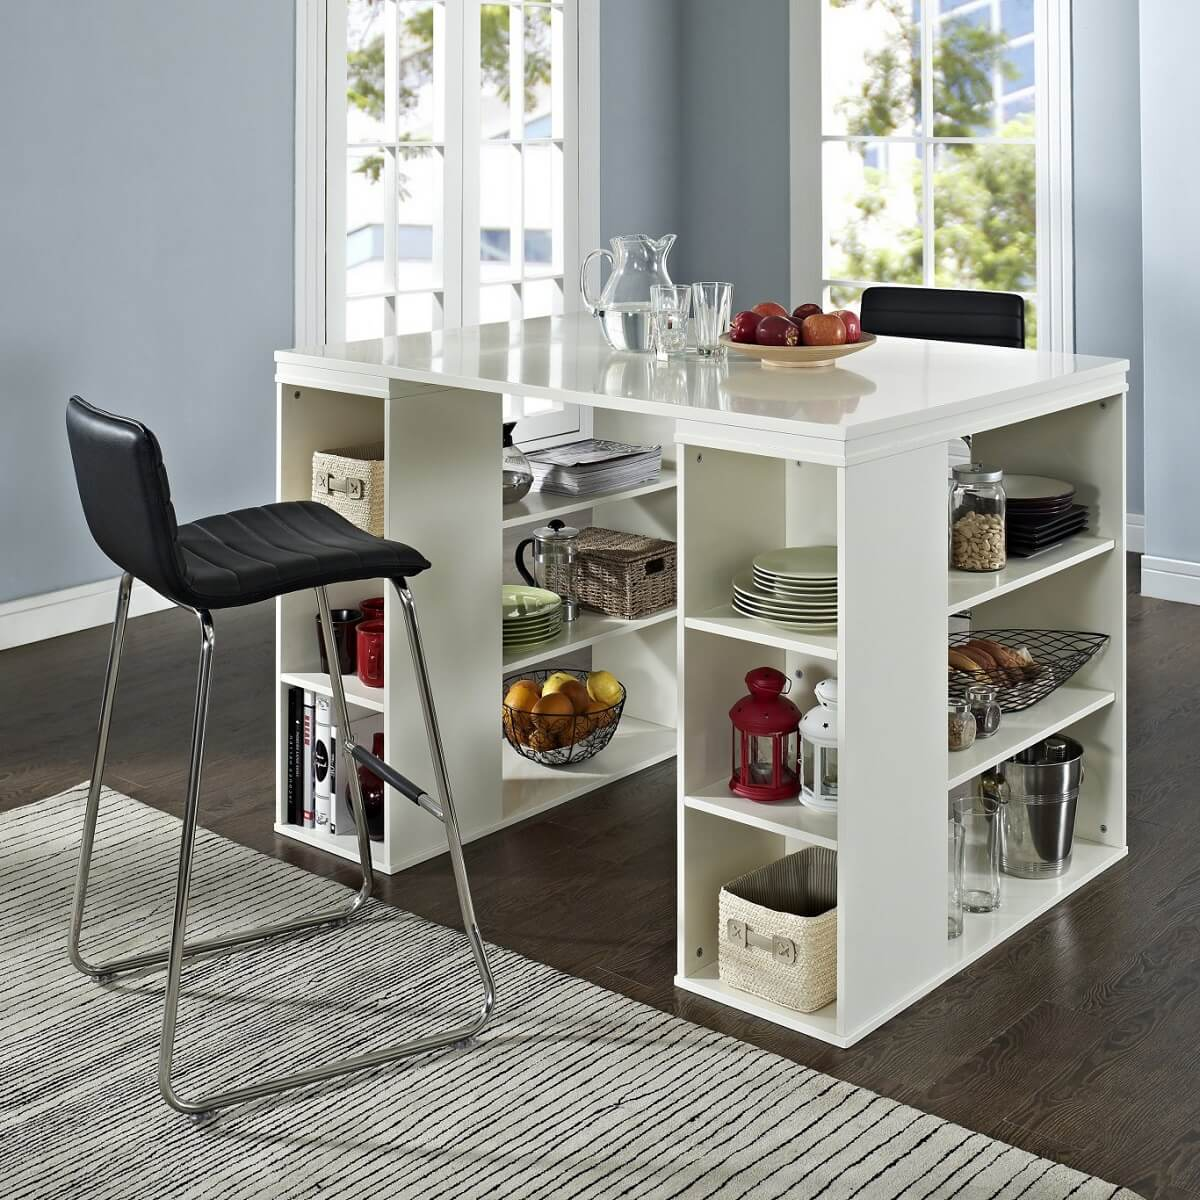 Cheap Kitchen Tables For Small Spaces 19 Small Kitchen Tables For Conserving Space Insteading